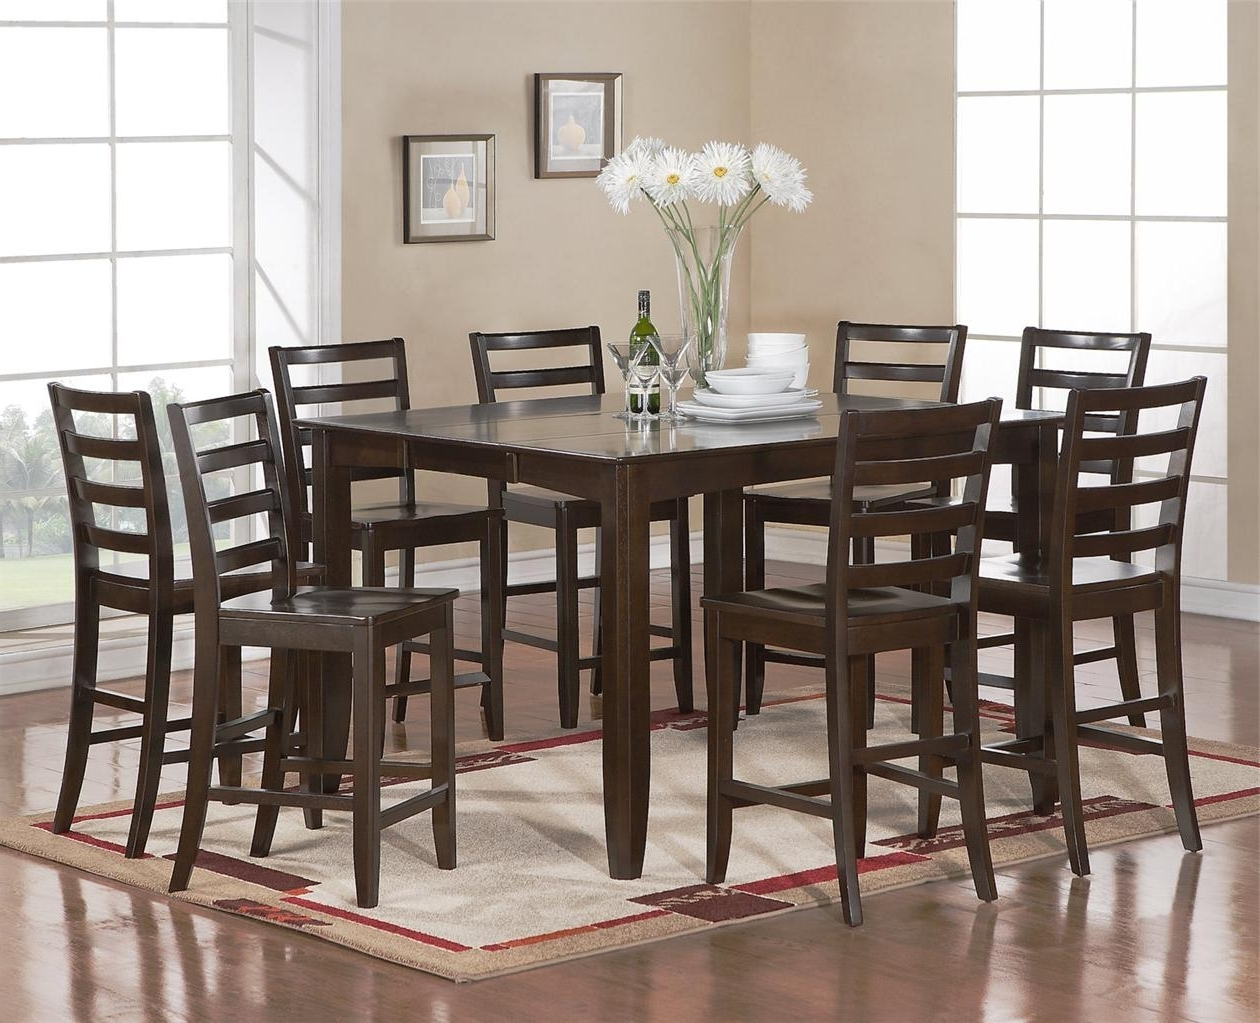 Most Recent 8 Chairs Dining Sets Throughout 8 Chair Dining Room Set Standard Dining Chair Dimensions (Gallery 4 of 25)